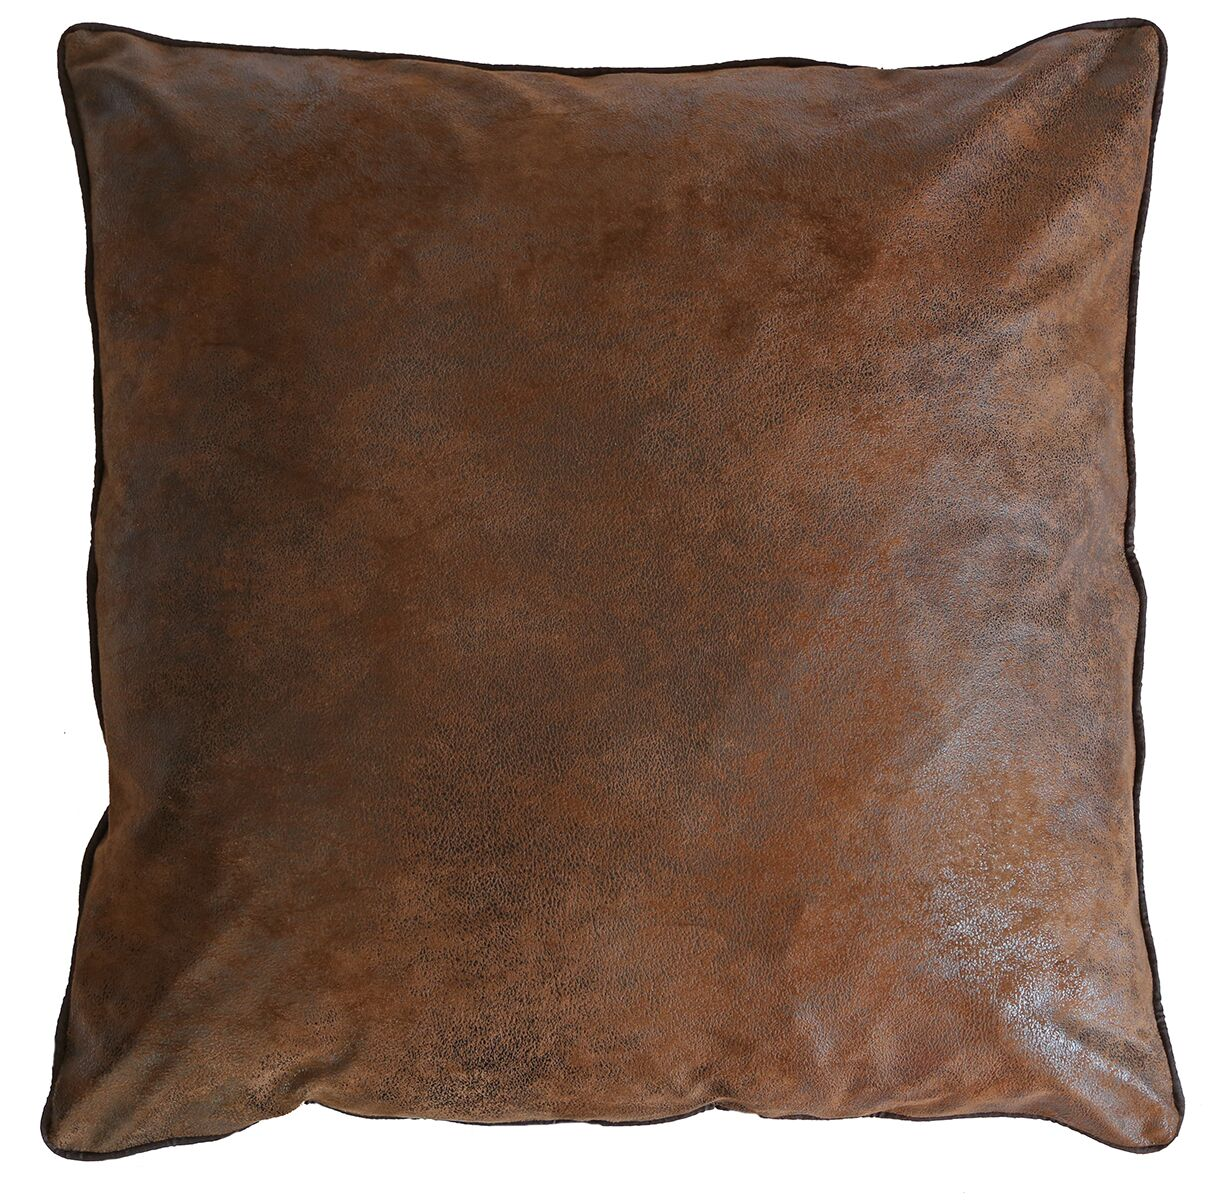 Faux Leather Euro Sham Carstens - unique linens online